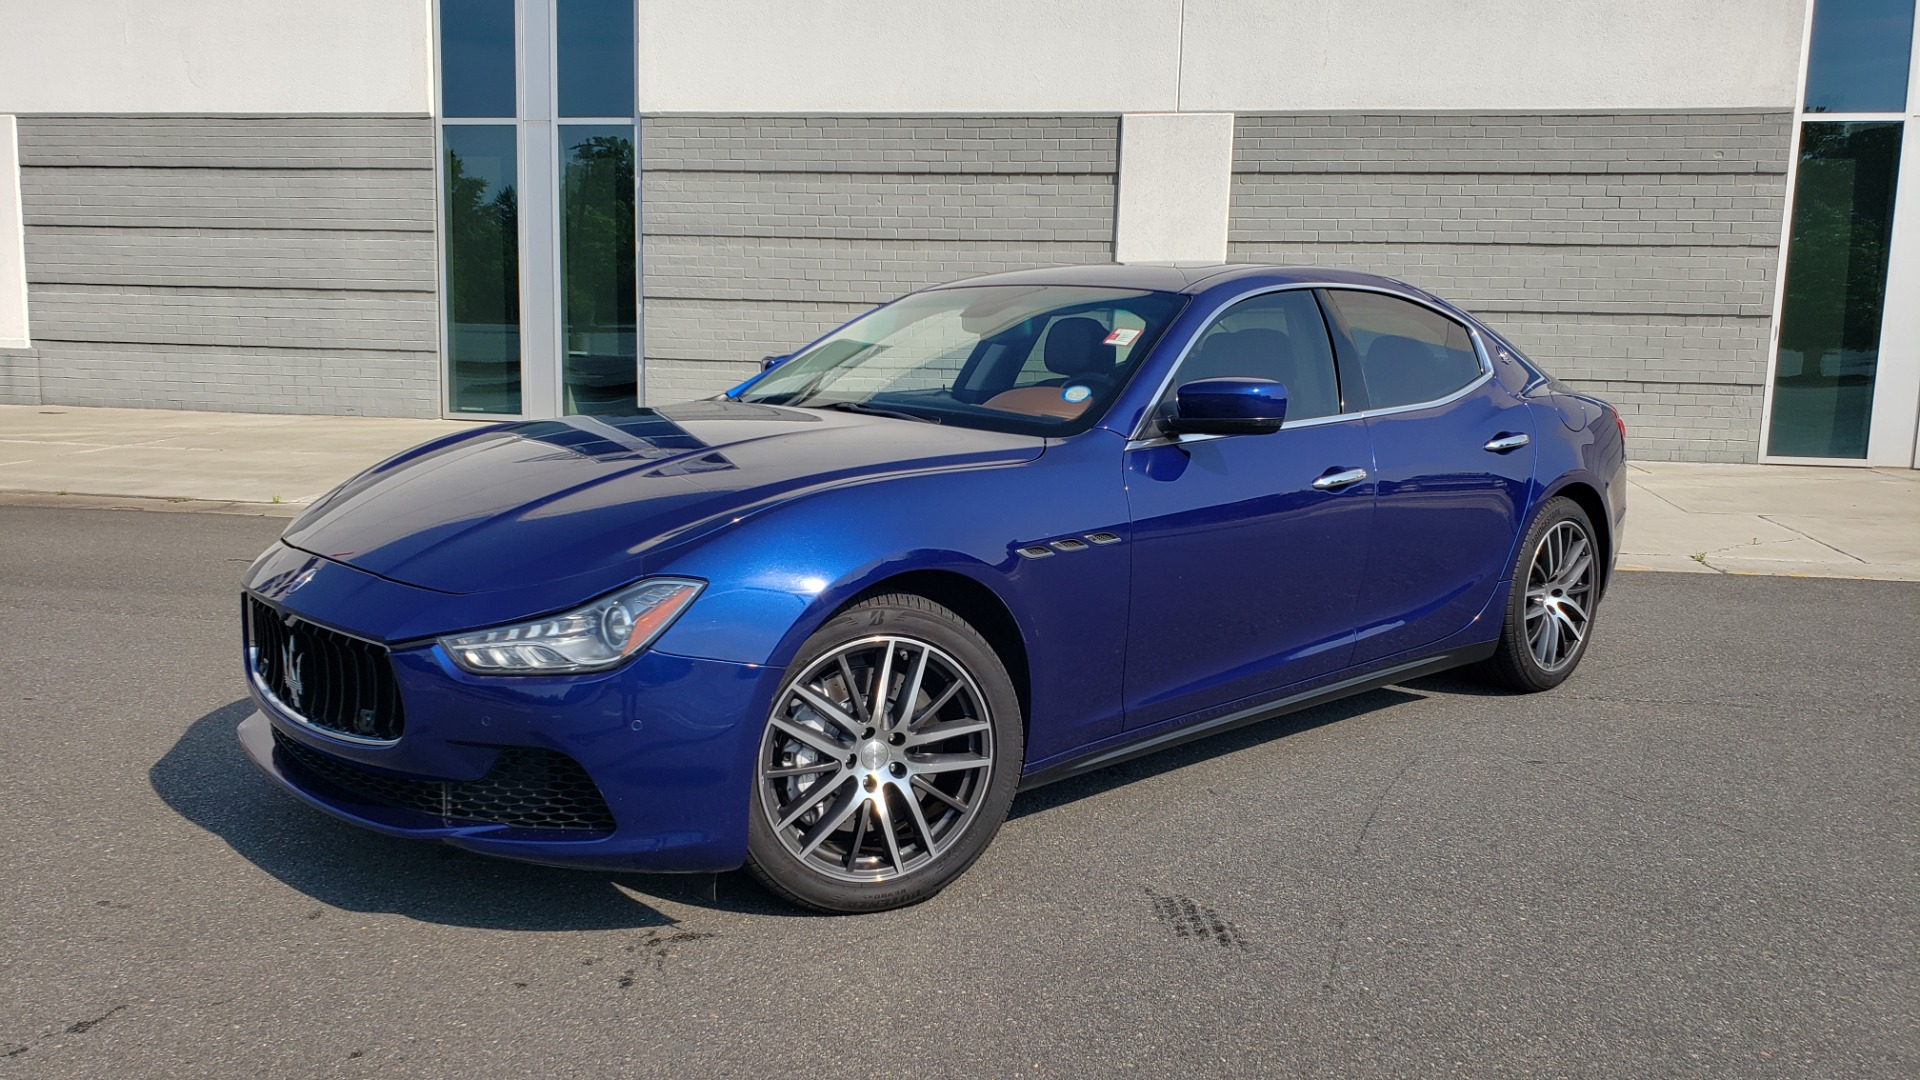 Used 2015 Maserati GHIBLI SEDAN / 3.0L V6 / 8-SPD AUTO / NAV / HTD STS / SUNROOF / REARVIEW for sale $24,495 at Formula Imports in Charlotte NC 28227 1